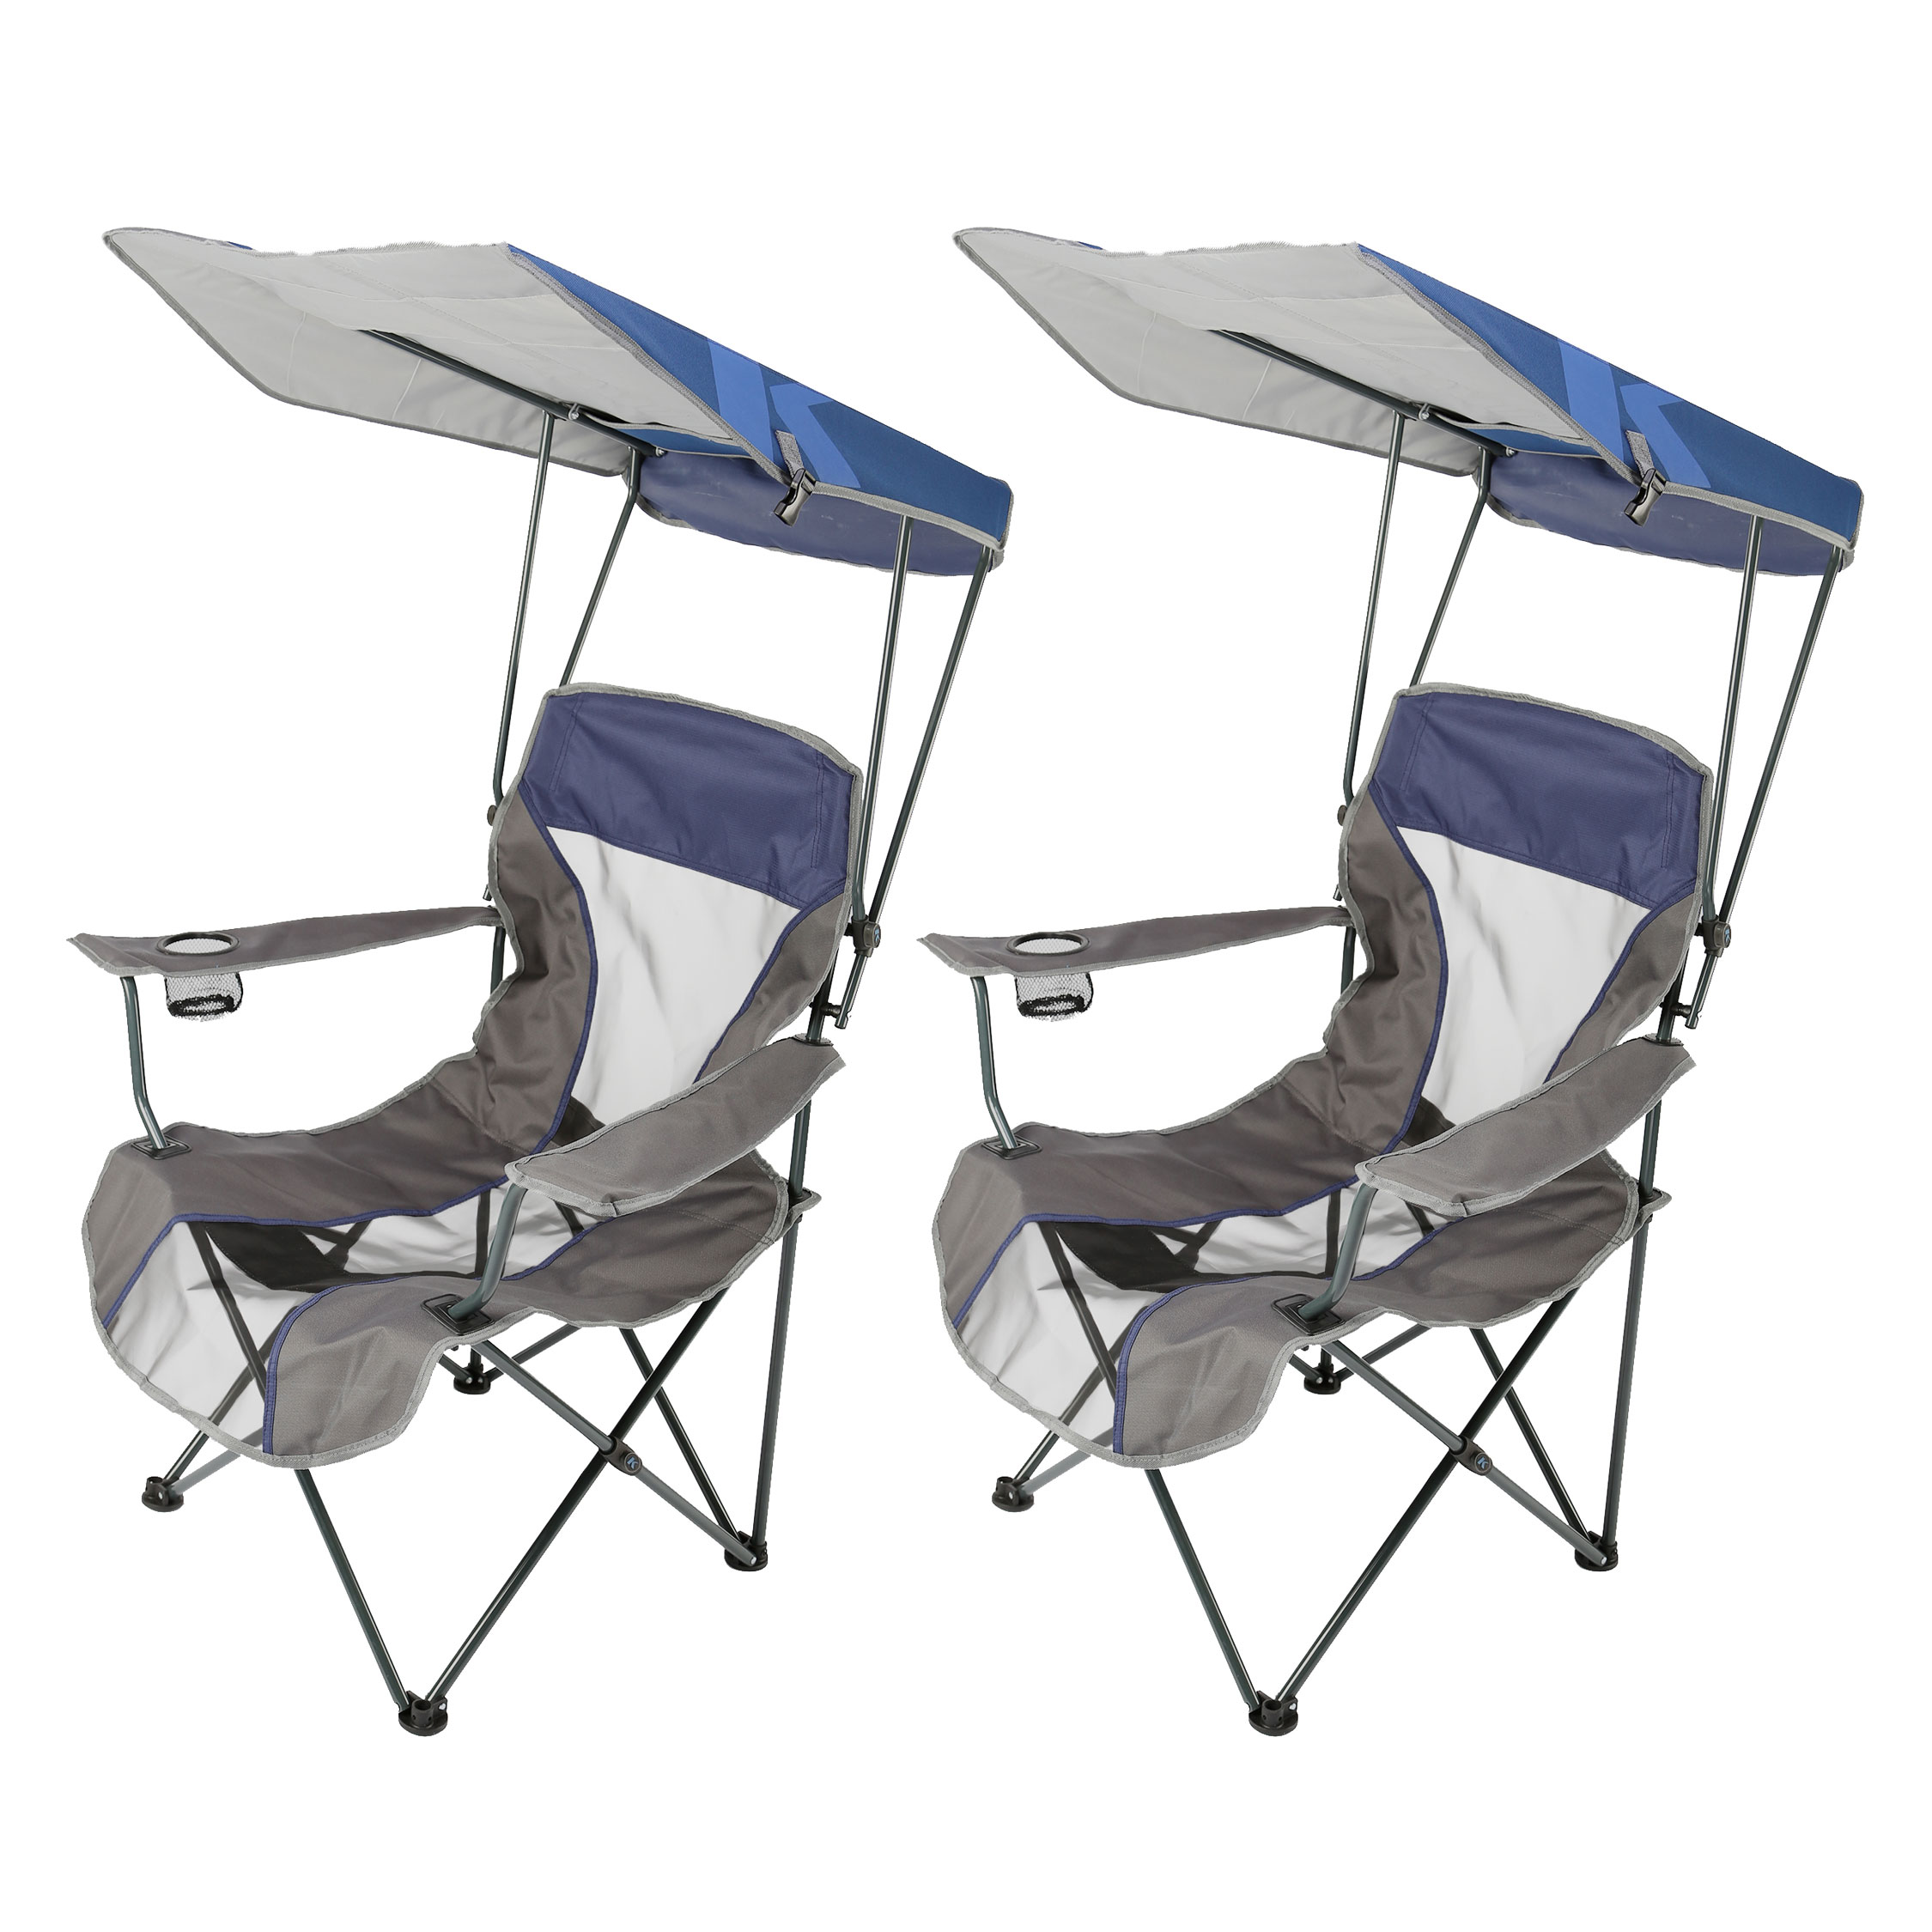 Swimways Premium Canopy Chair Royal - 2 Pack